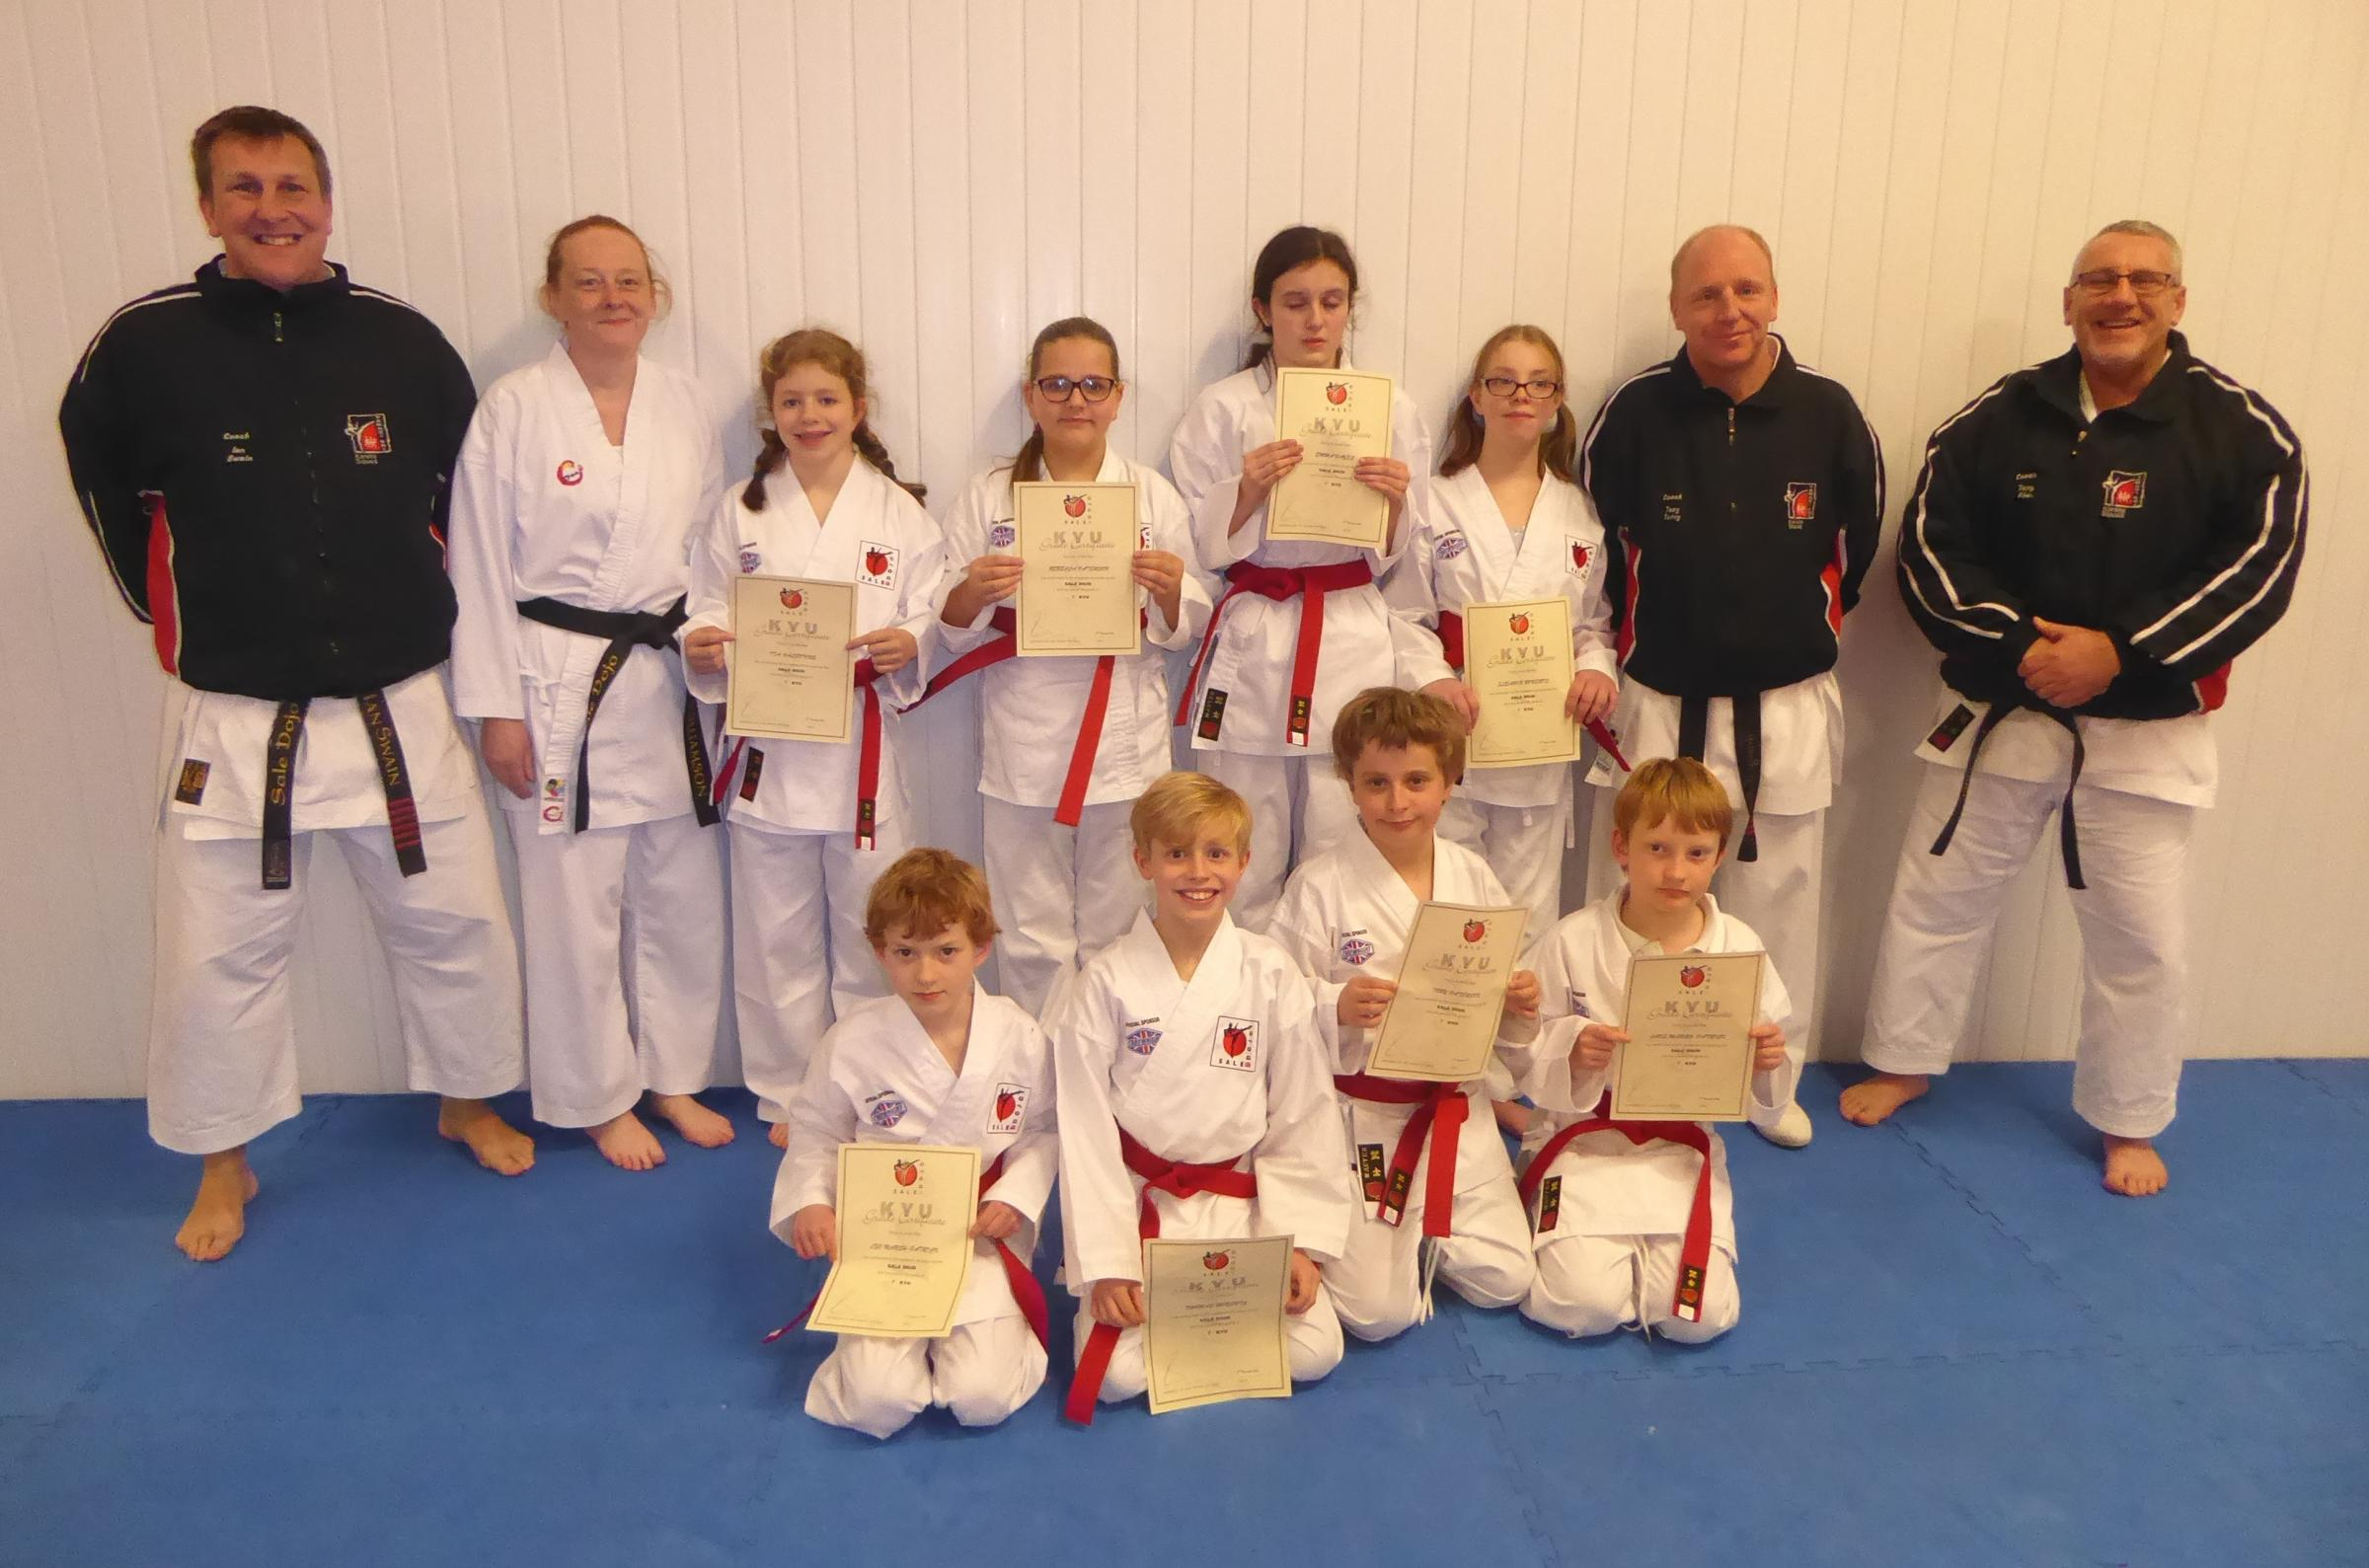 Youngsters from High Functioning Trafford, who passed their first karate grades